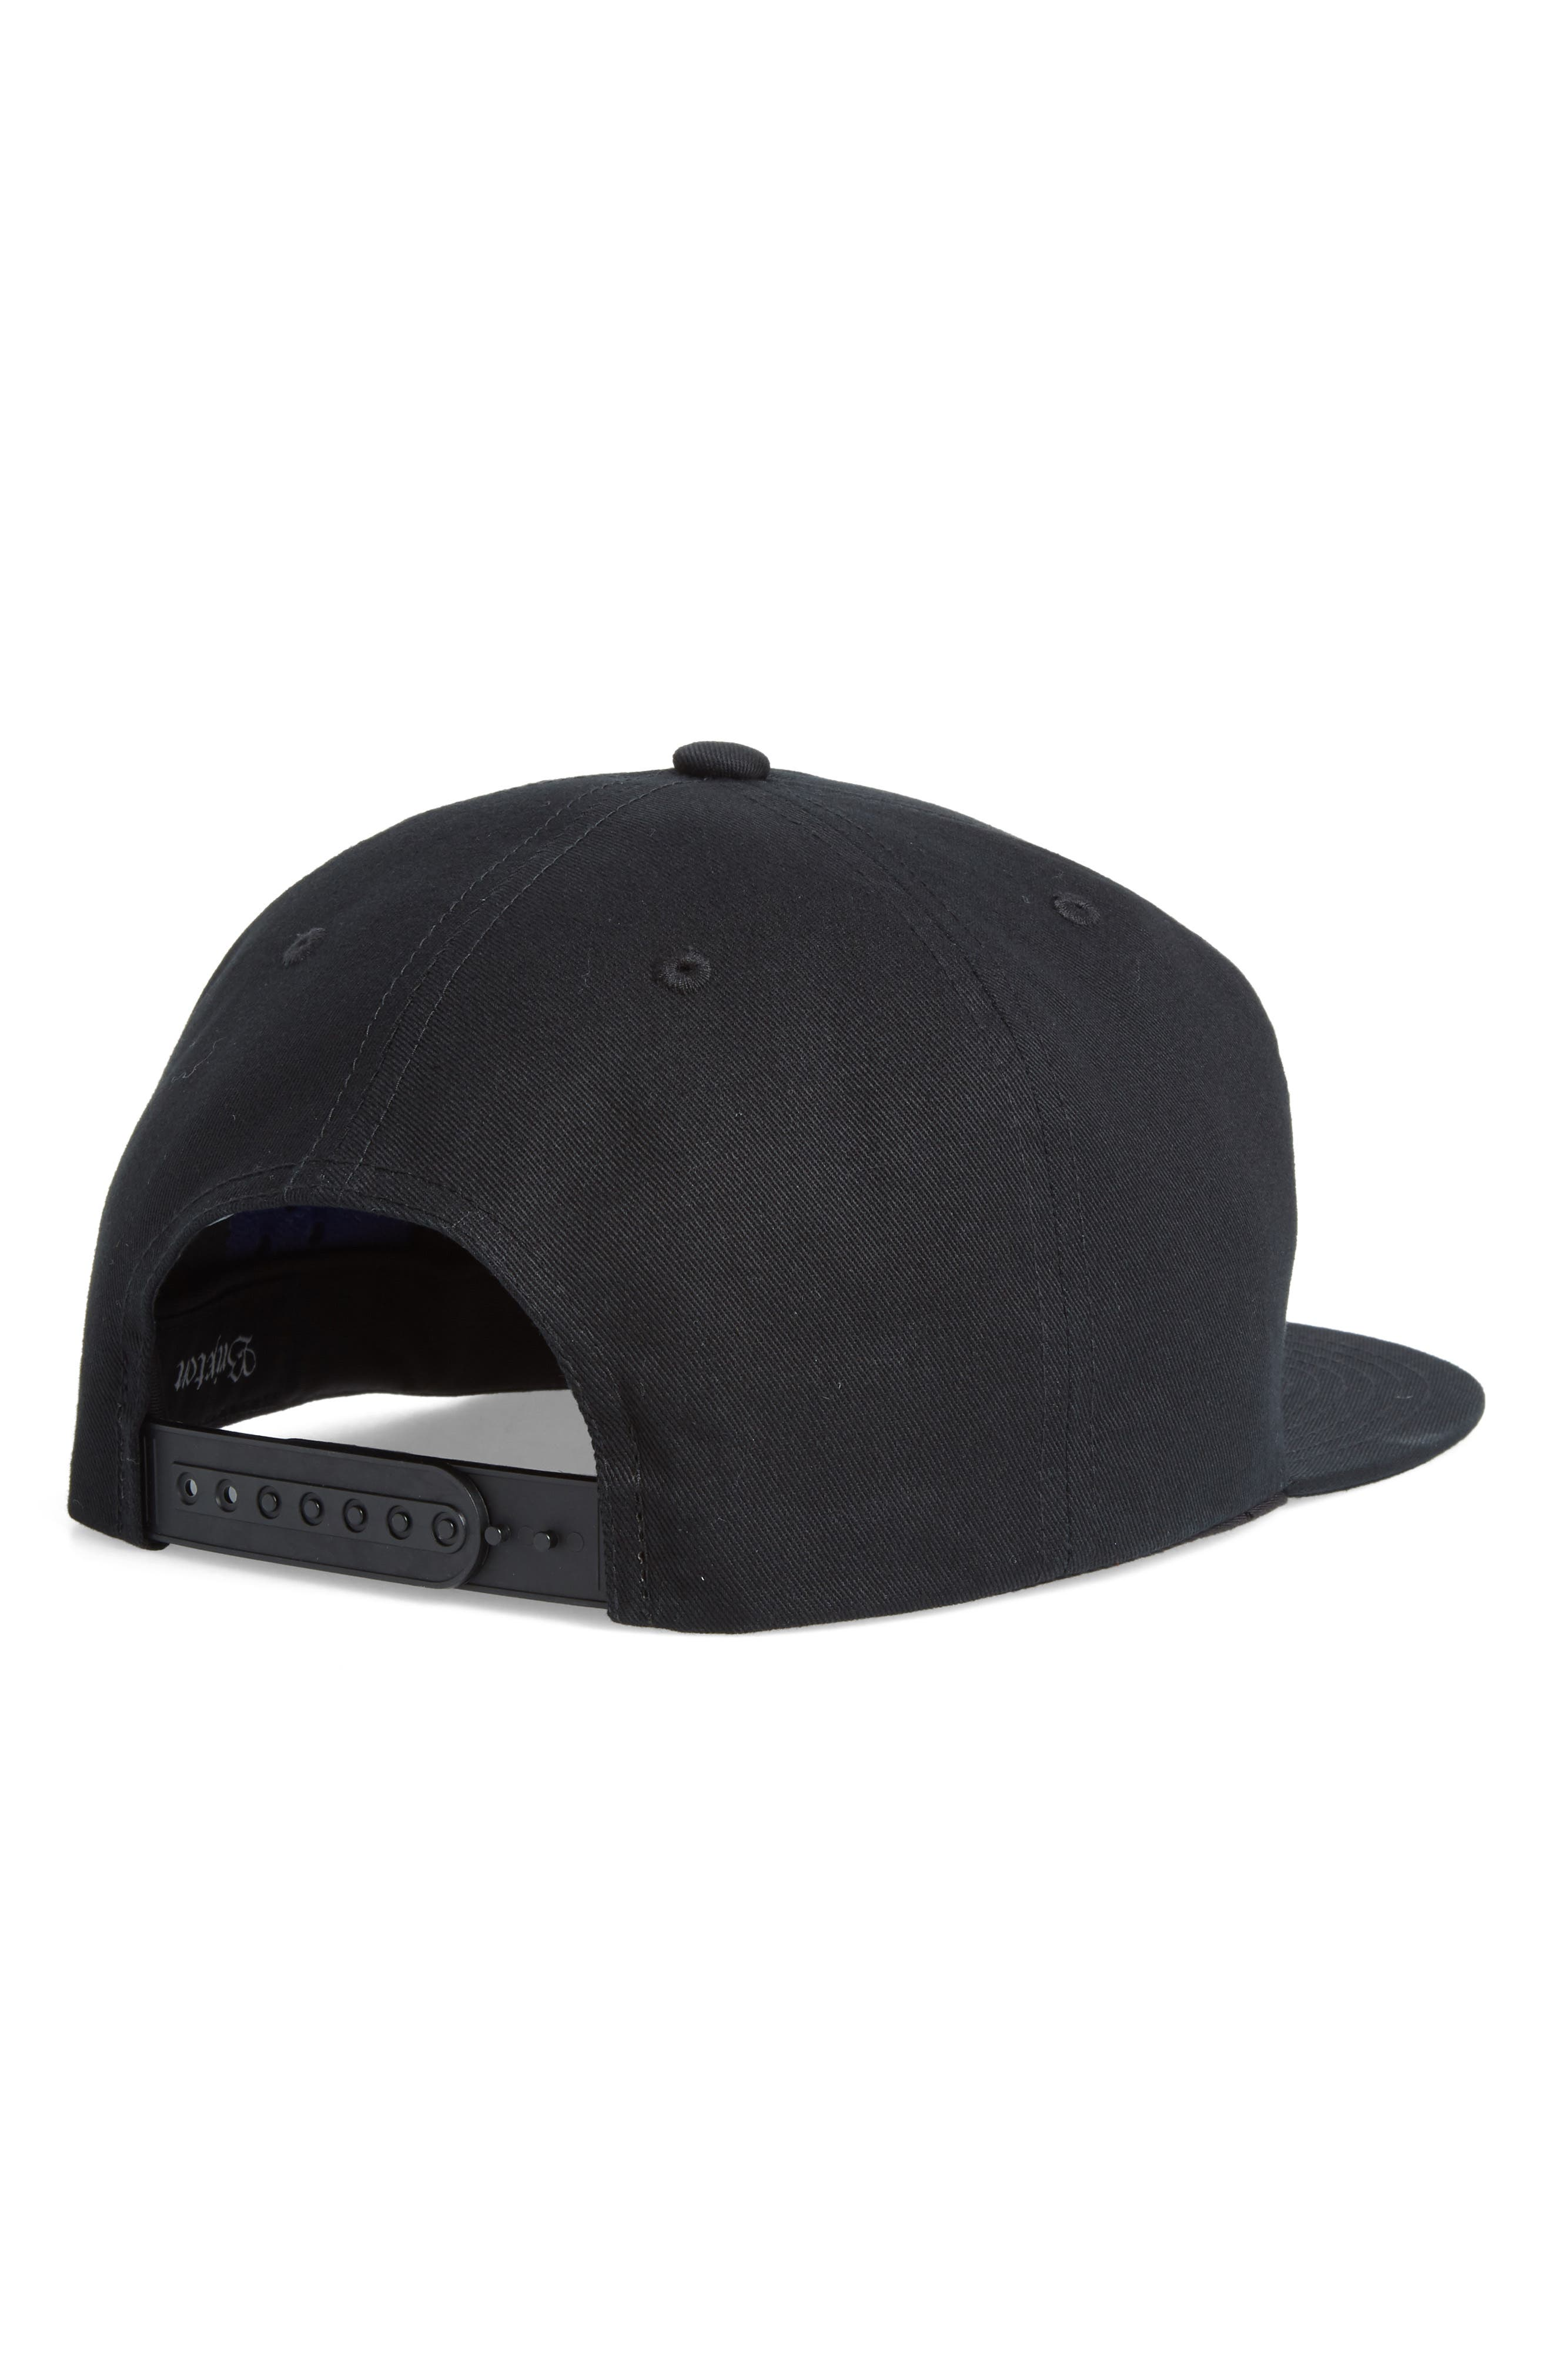 Pomona Ball Cap,                             Alternate thumbnail 2, color,                             BLACK